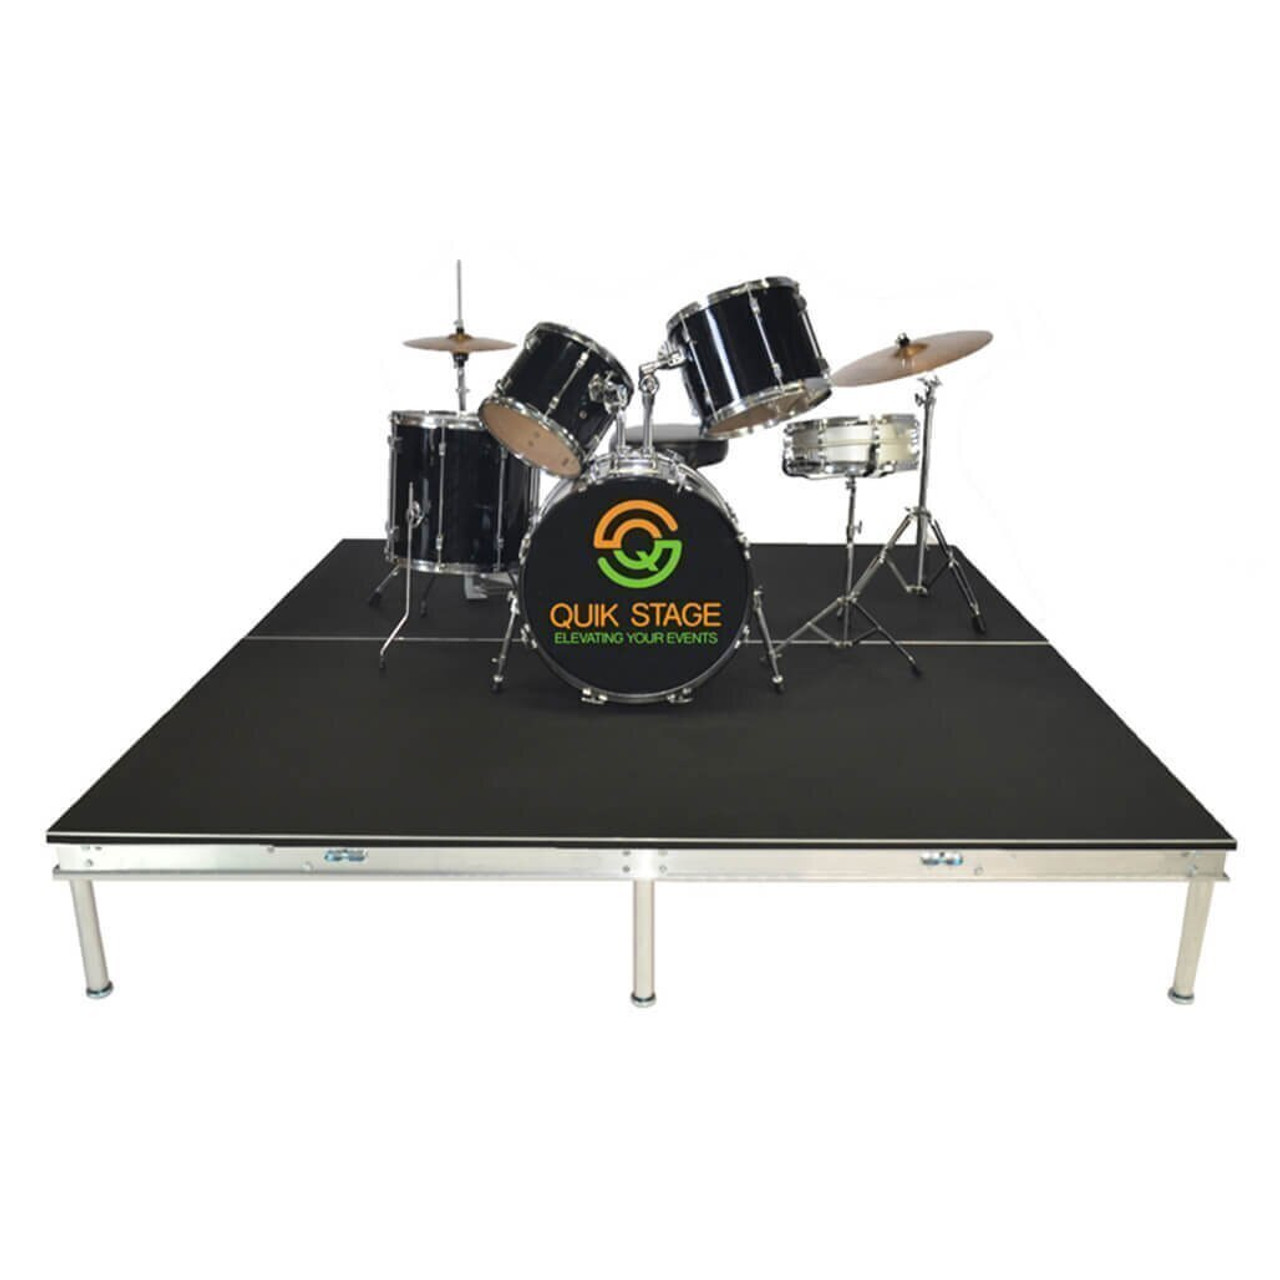 Quik Stage 4' x 28' High Portable Stage Package with Black Polyvinyl Non-Skid Surface. Additional Heights and Surfaces Available - Drum Riser without skirting